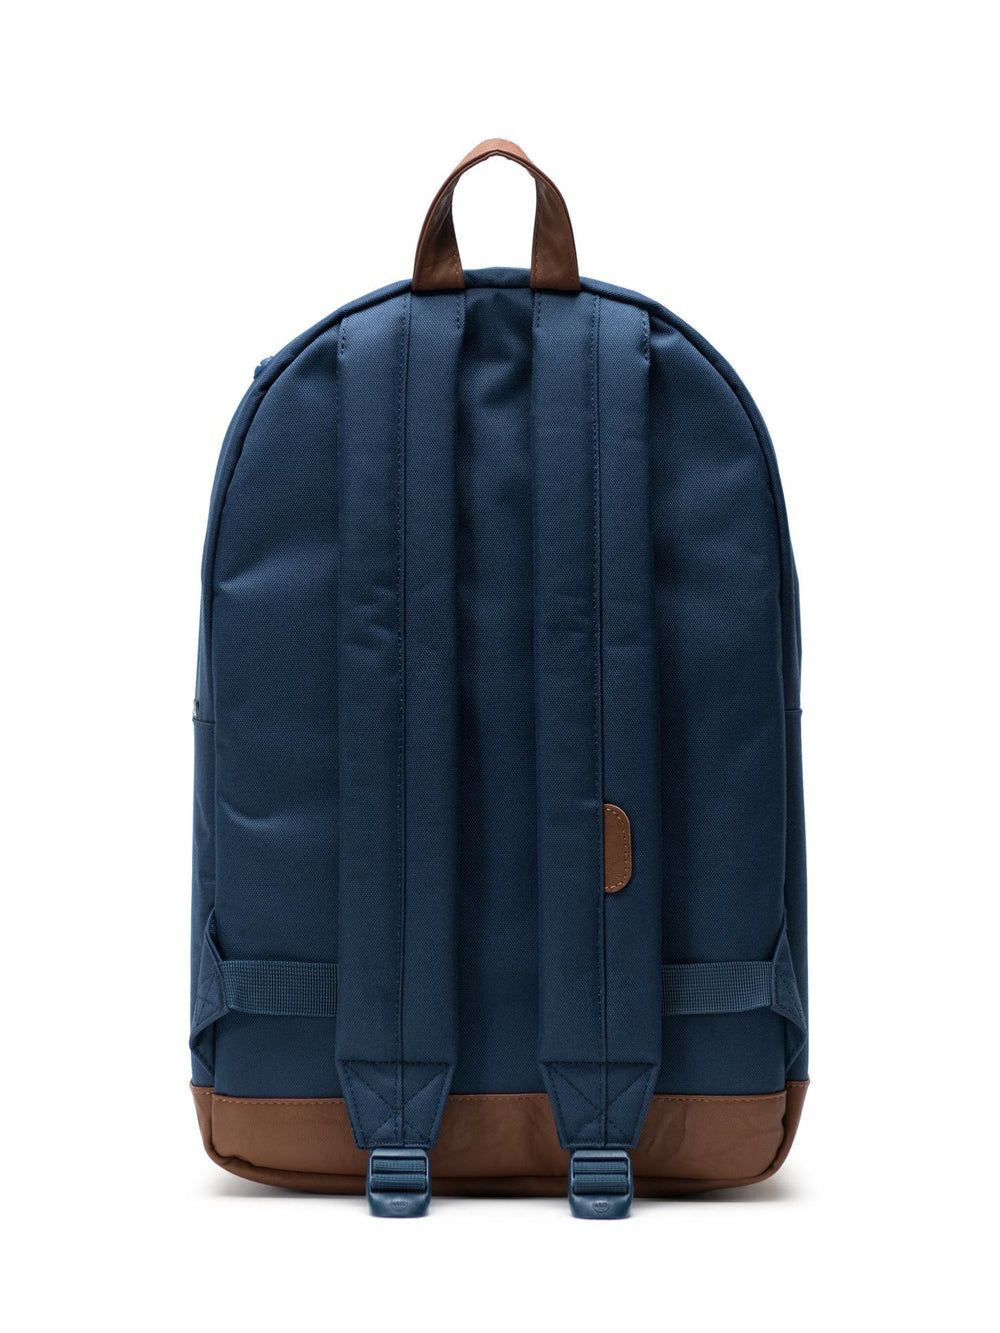 POP QUIZ 22L - NAVY